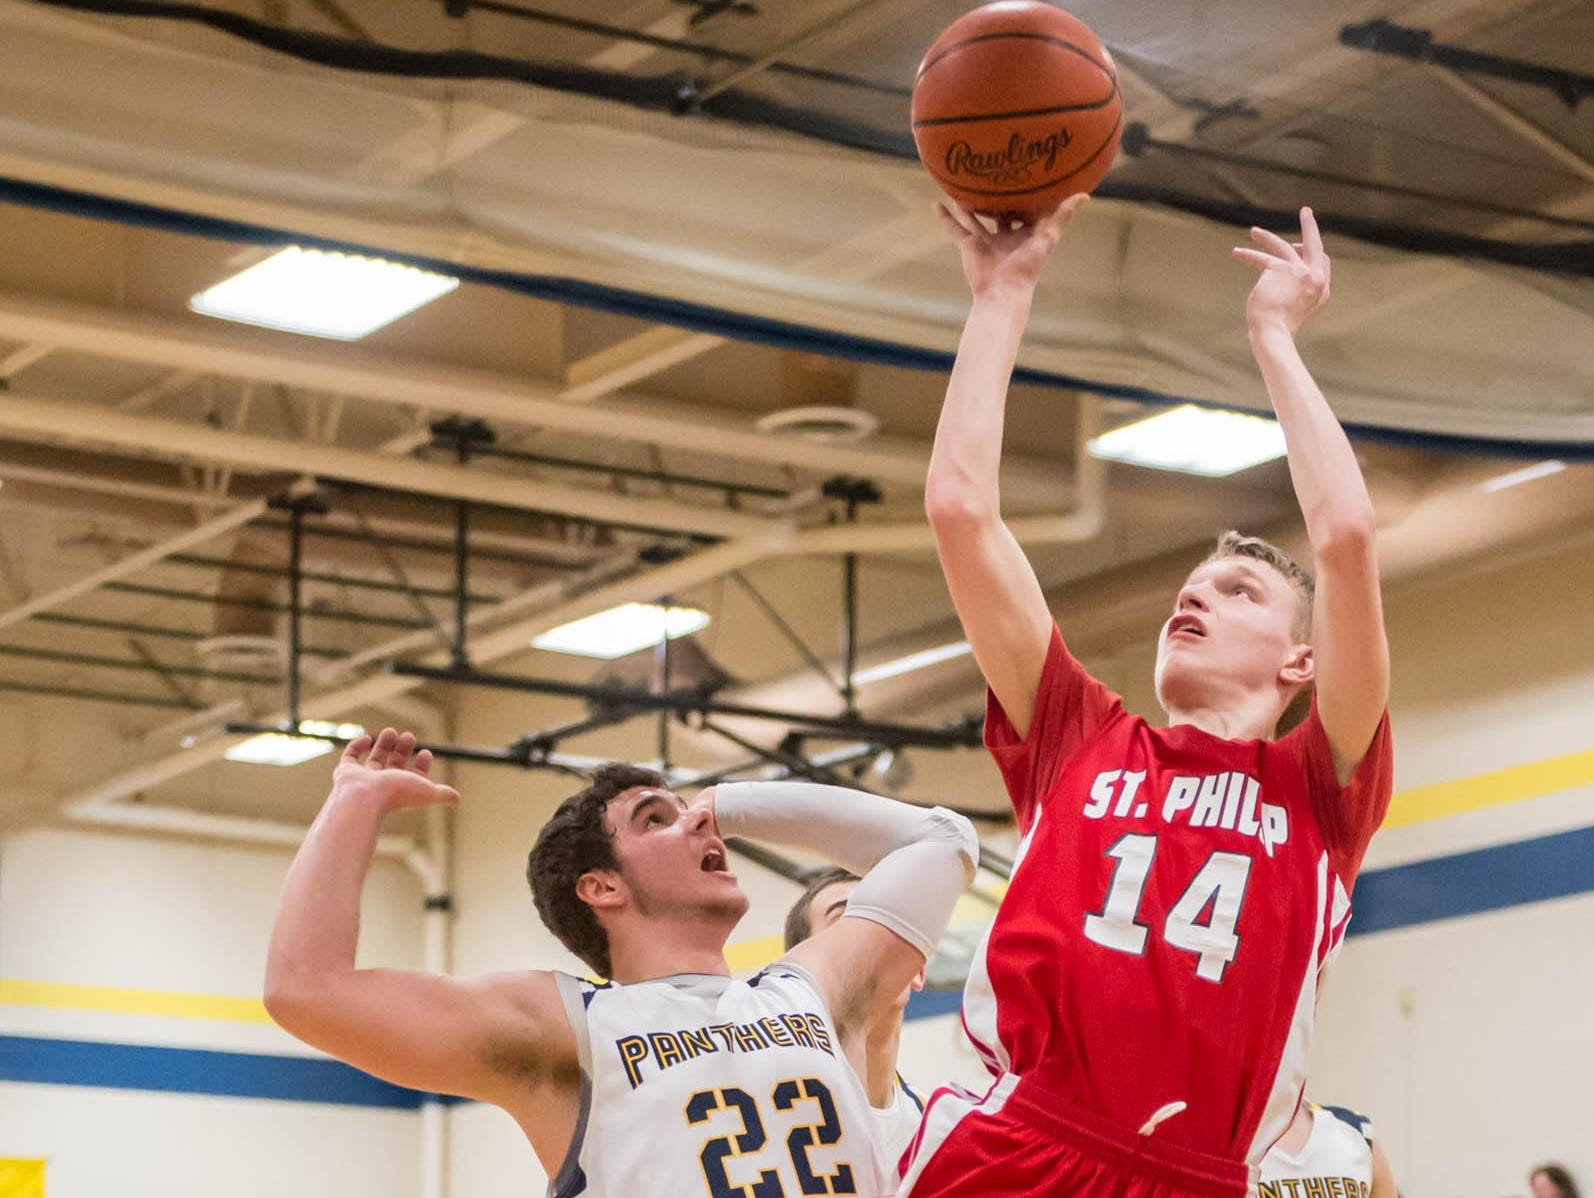 St. Philip's Justice Steiner (14) goes up for a shot over a Climax-Scotts defender in action earlier this season.